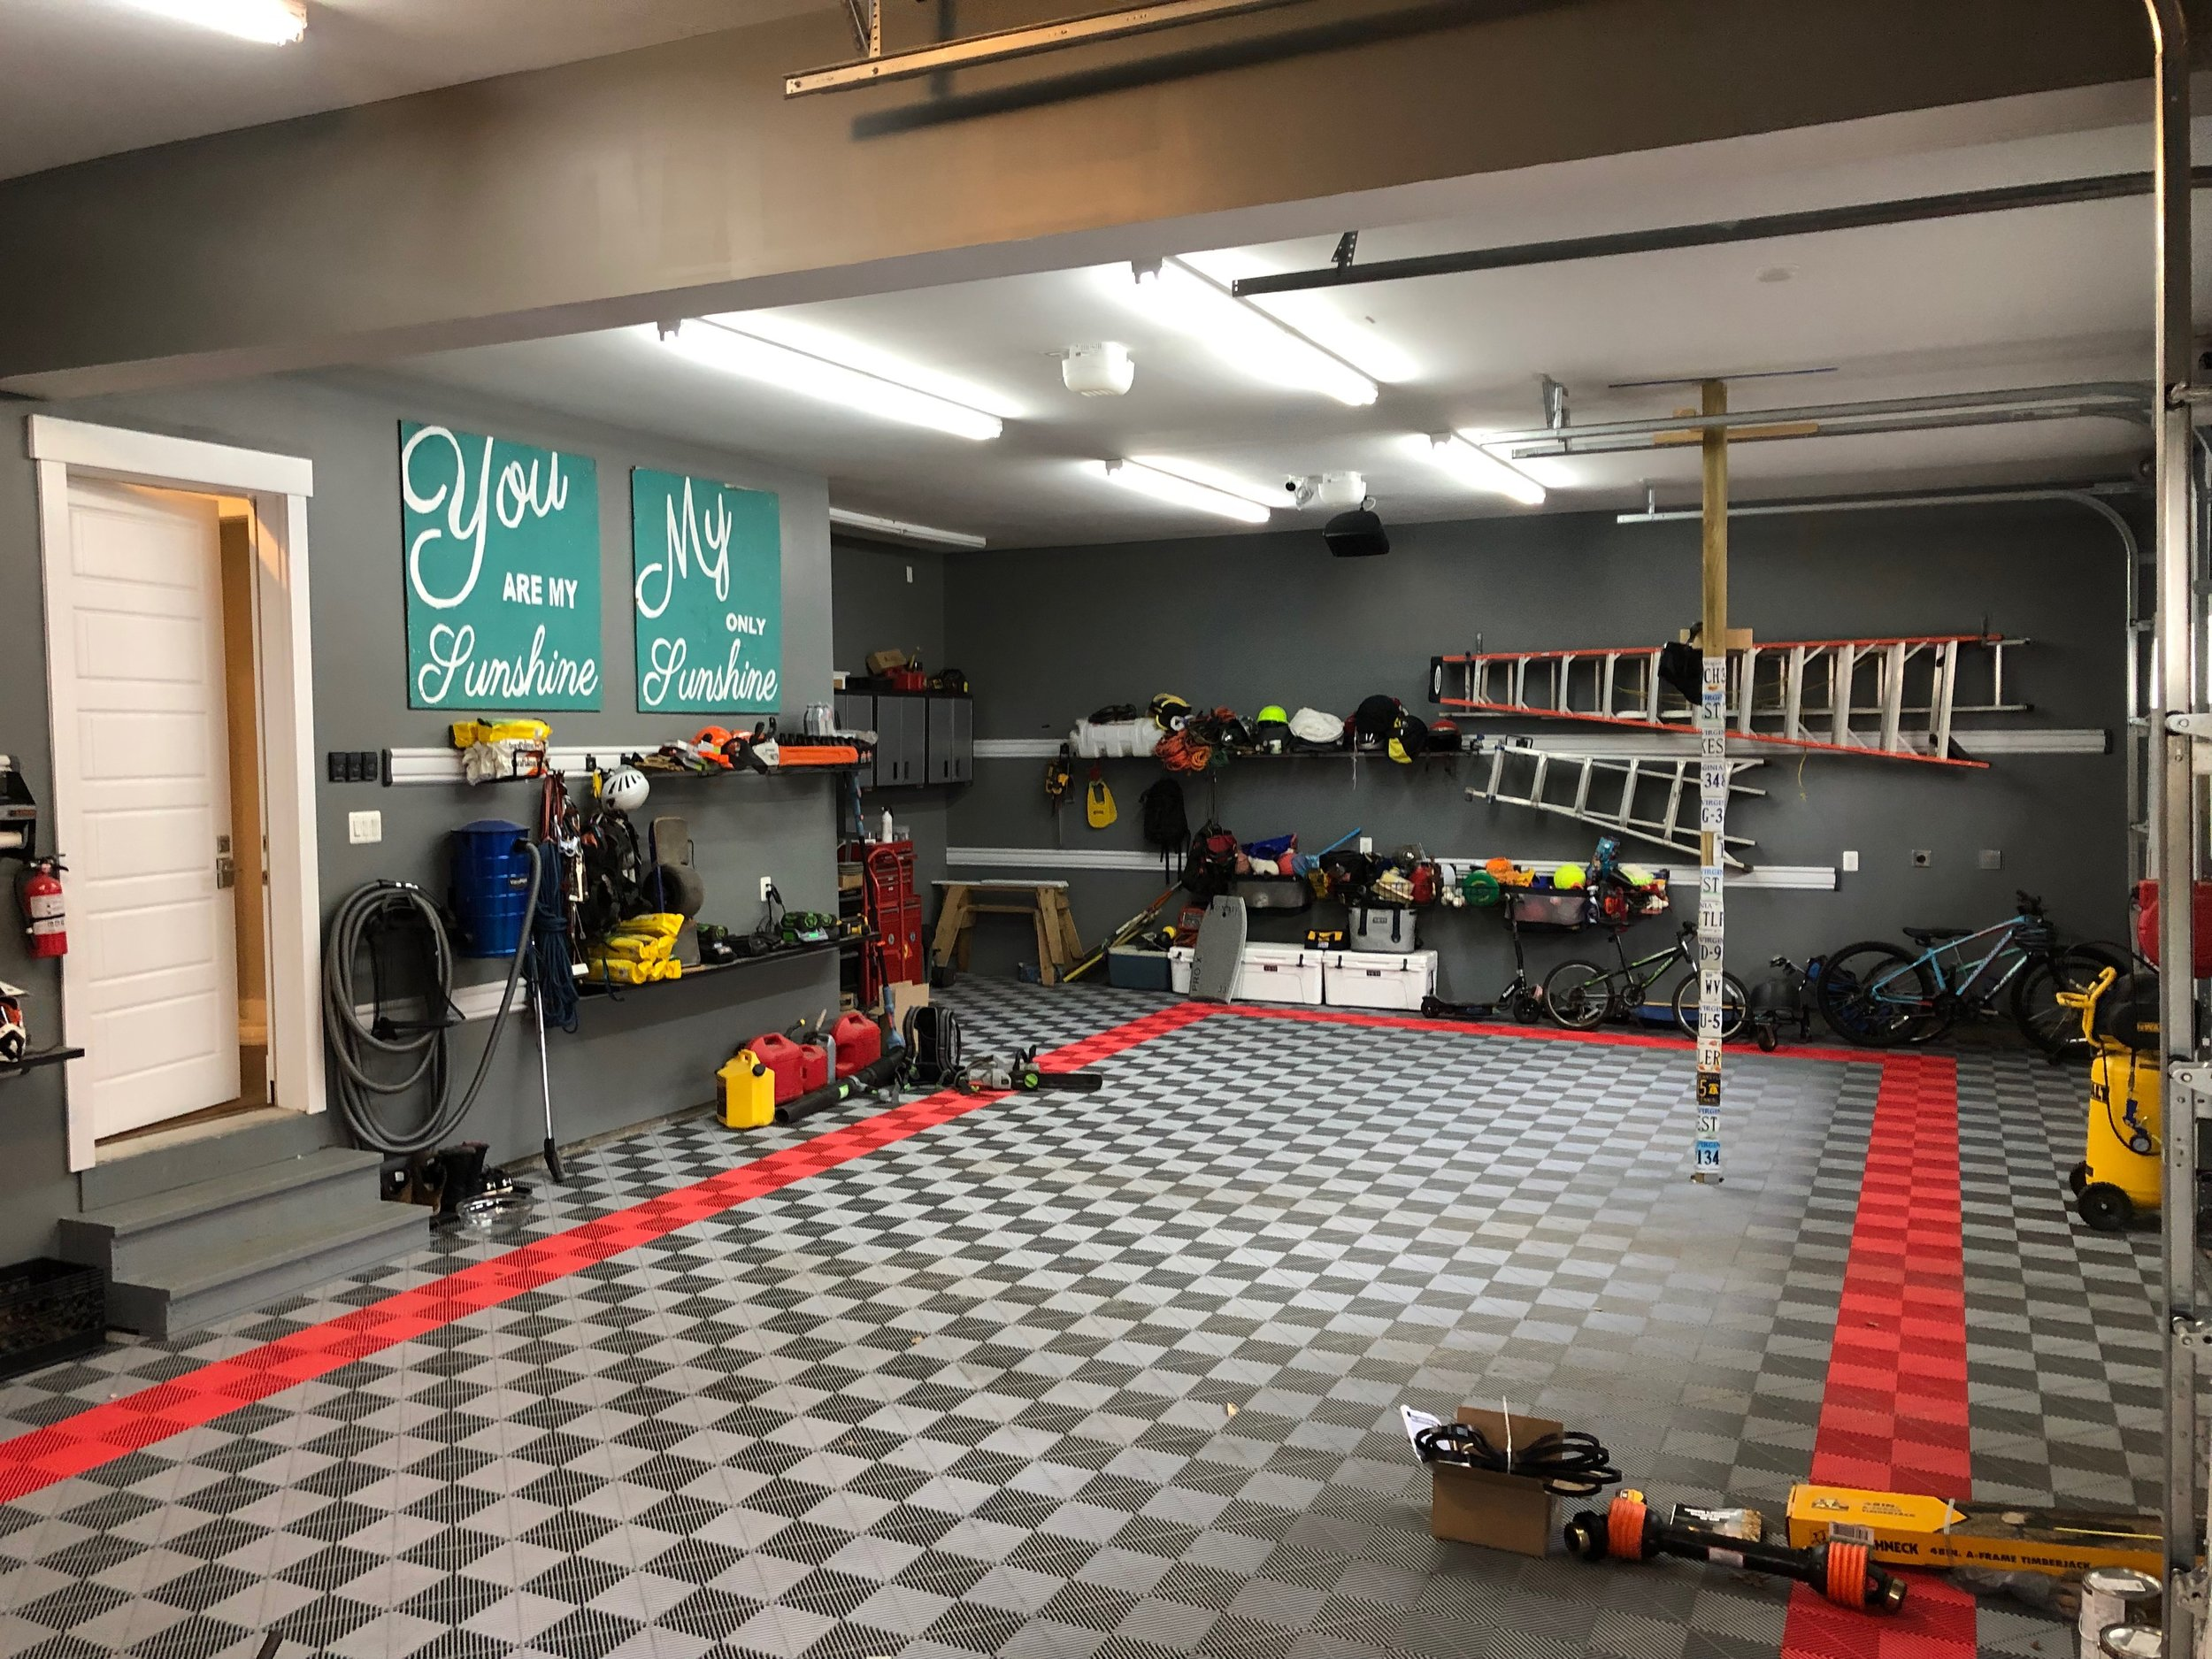 Garage and toy room.